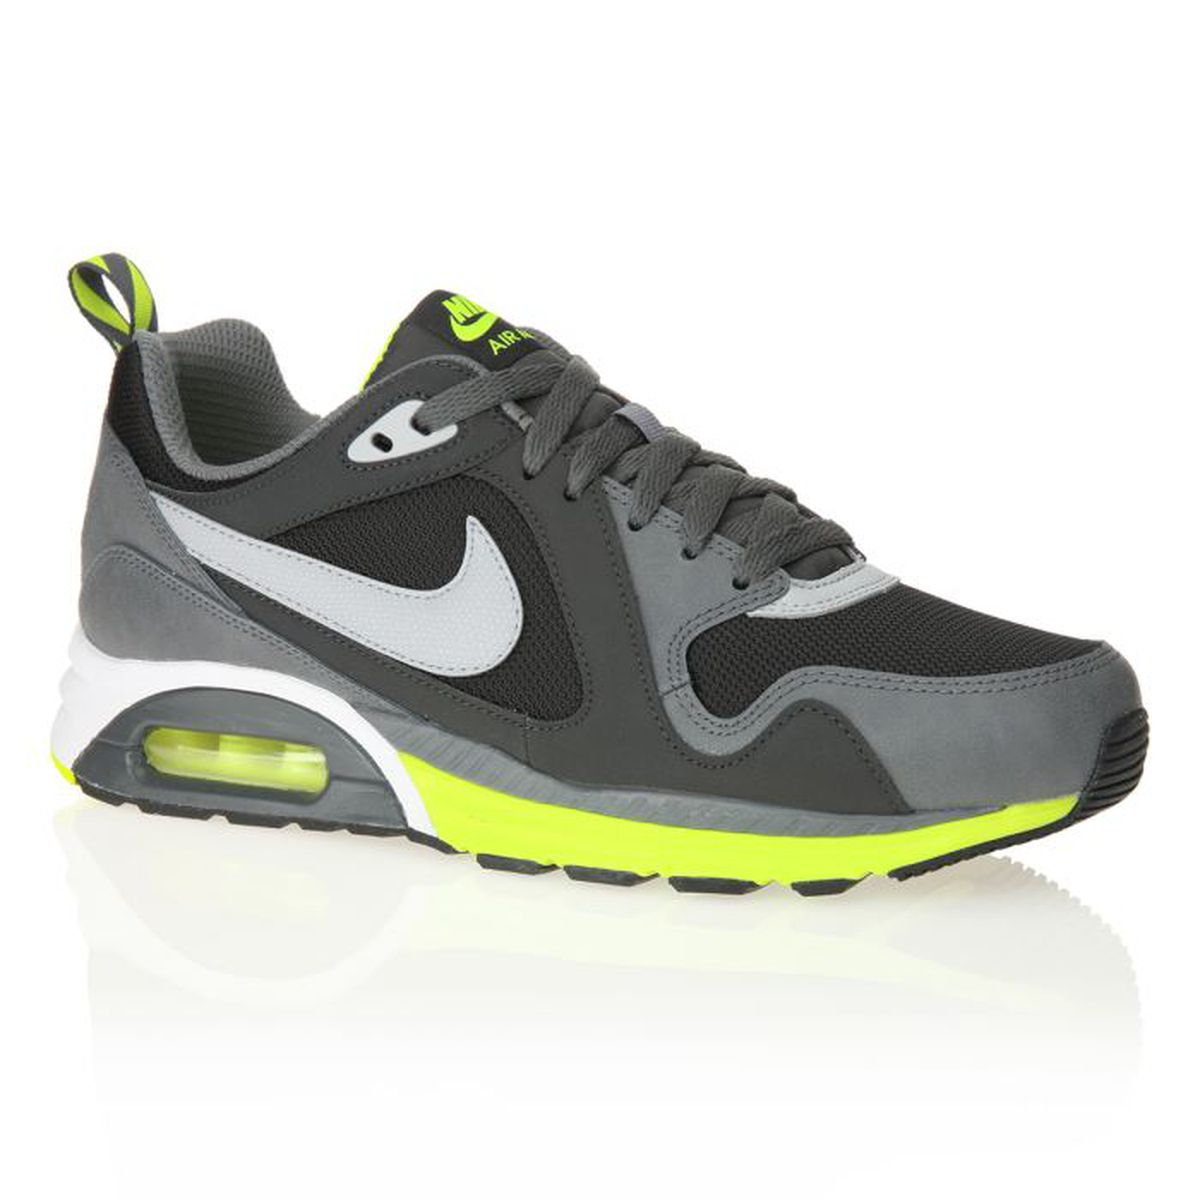 NIKE Baskets Air Max Trax Homme Gris et jaune fluo Achat